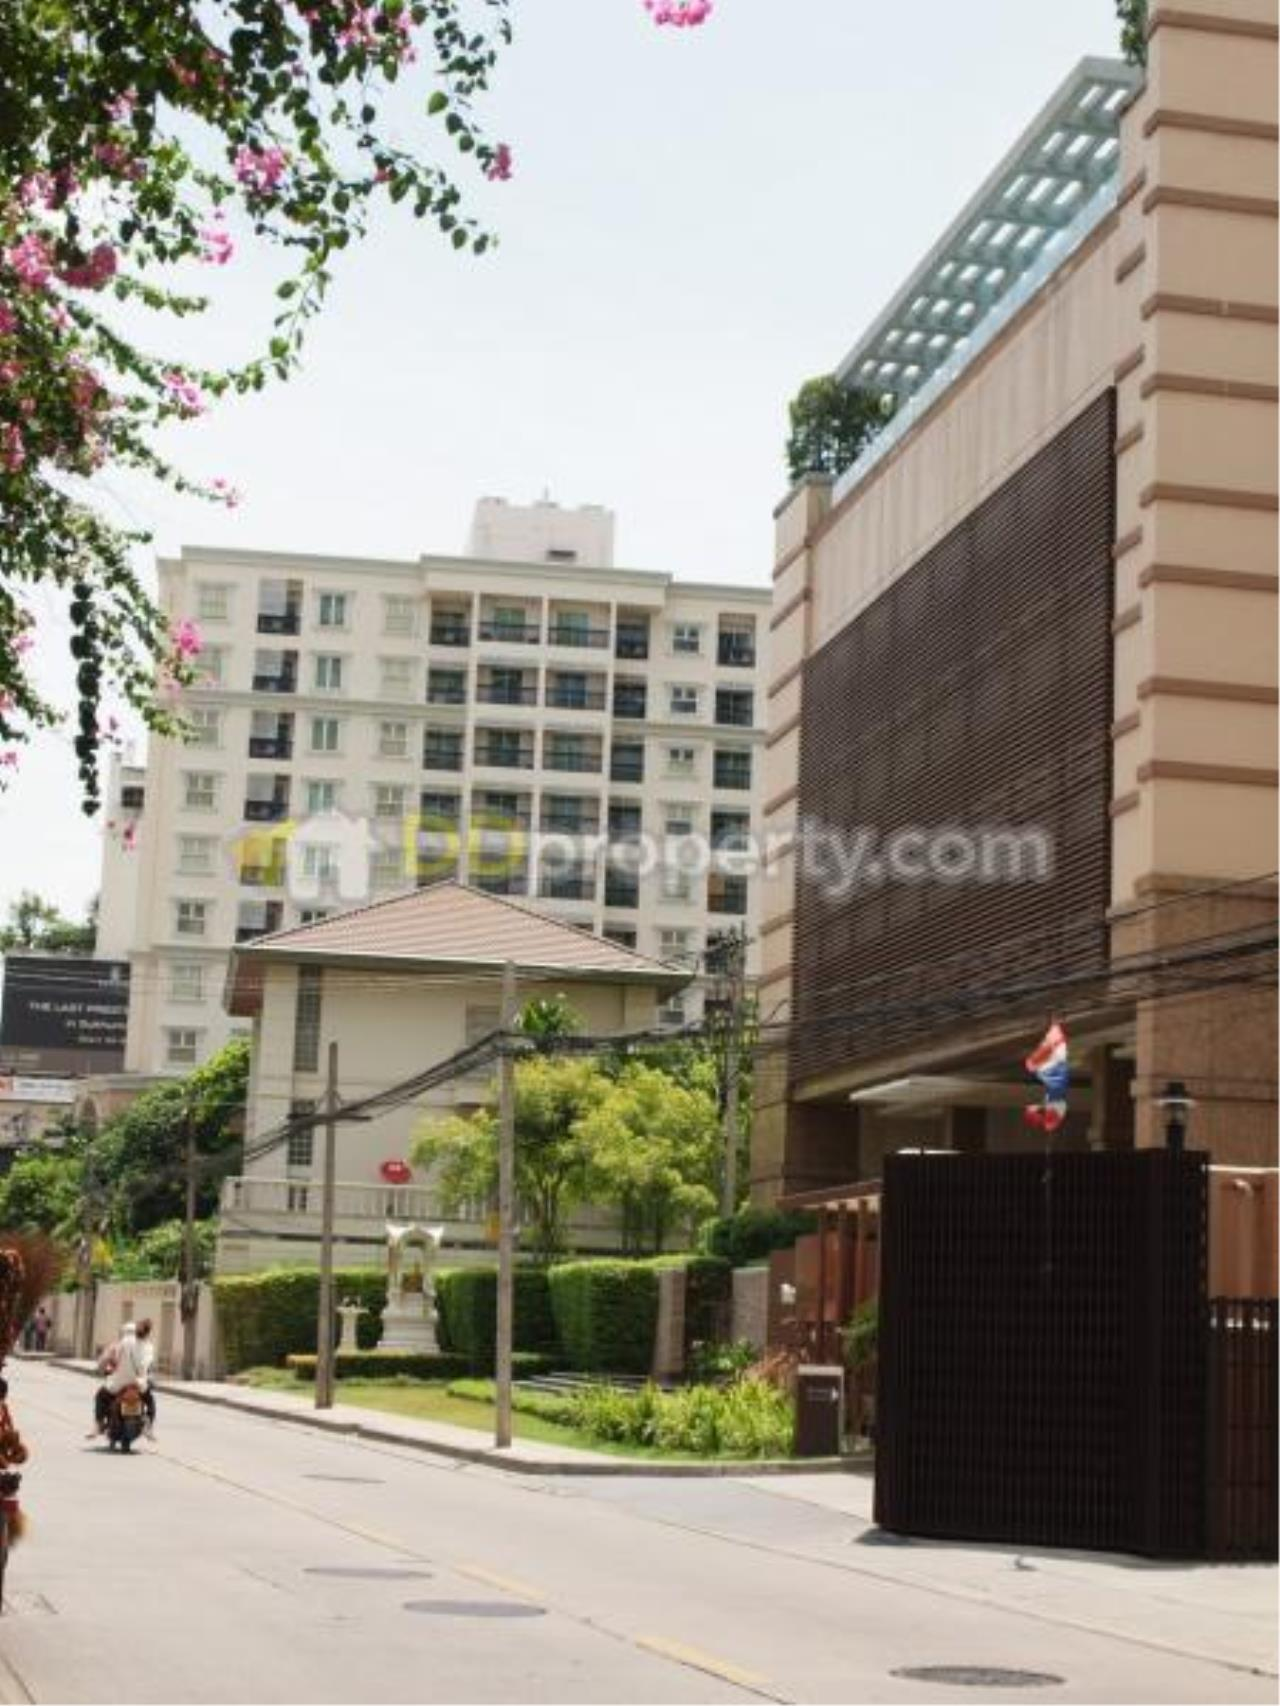 Quality Life Property Agency's ****New***Condo For Sale With Tenant 3 Bedroom At Baan Siri 24, Corner Unit Wide Area On High Floor 1